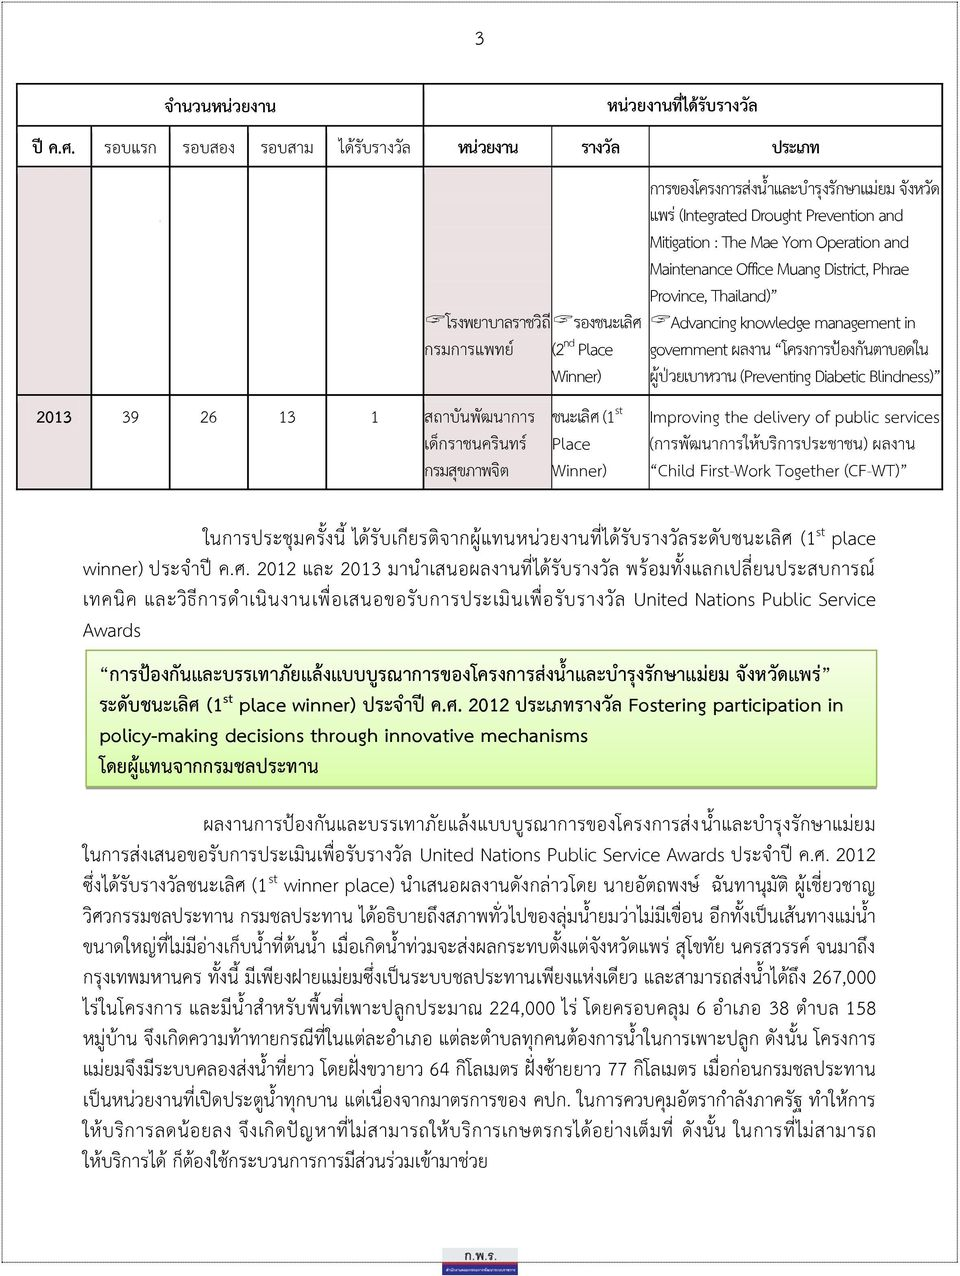 Winner) กำรของโครงกำรส งน ำและบำร งร กษำแม ยม จ งหว ด แพร (Integrated Drought Prevention and Mitigation : The Mae Yom Operation and Maintenance Office Muang District, Phrae Province, Thailand)